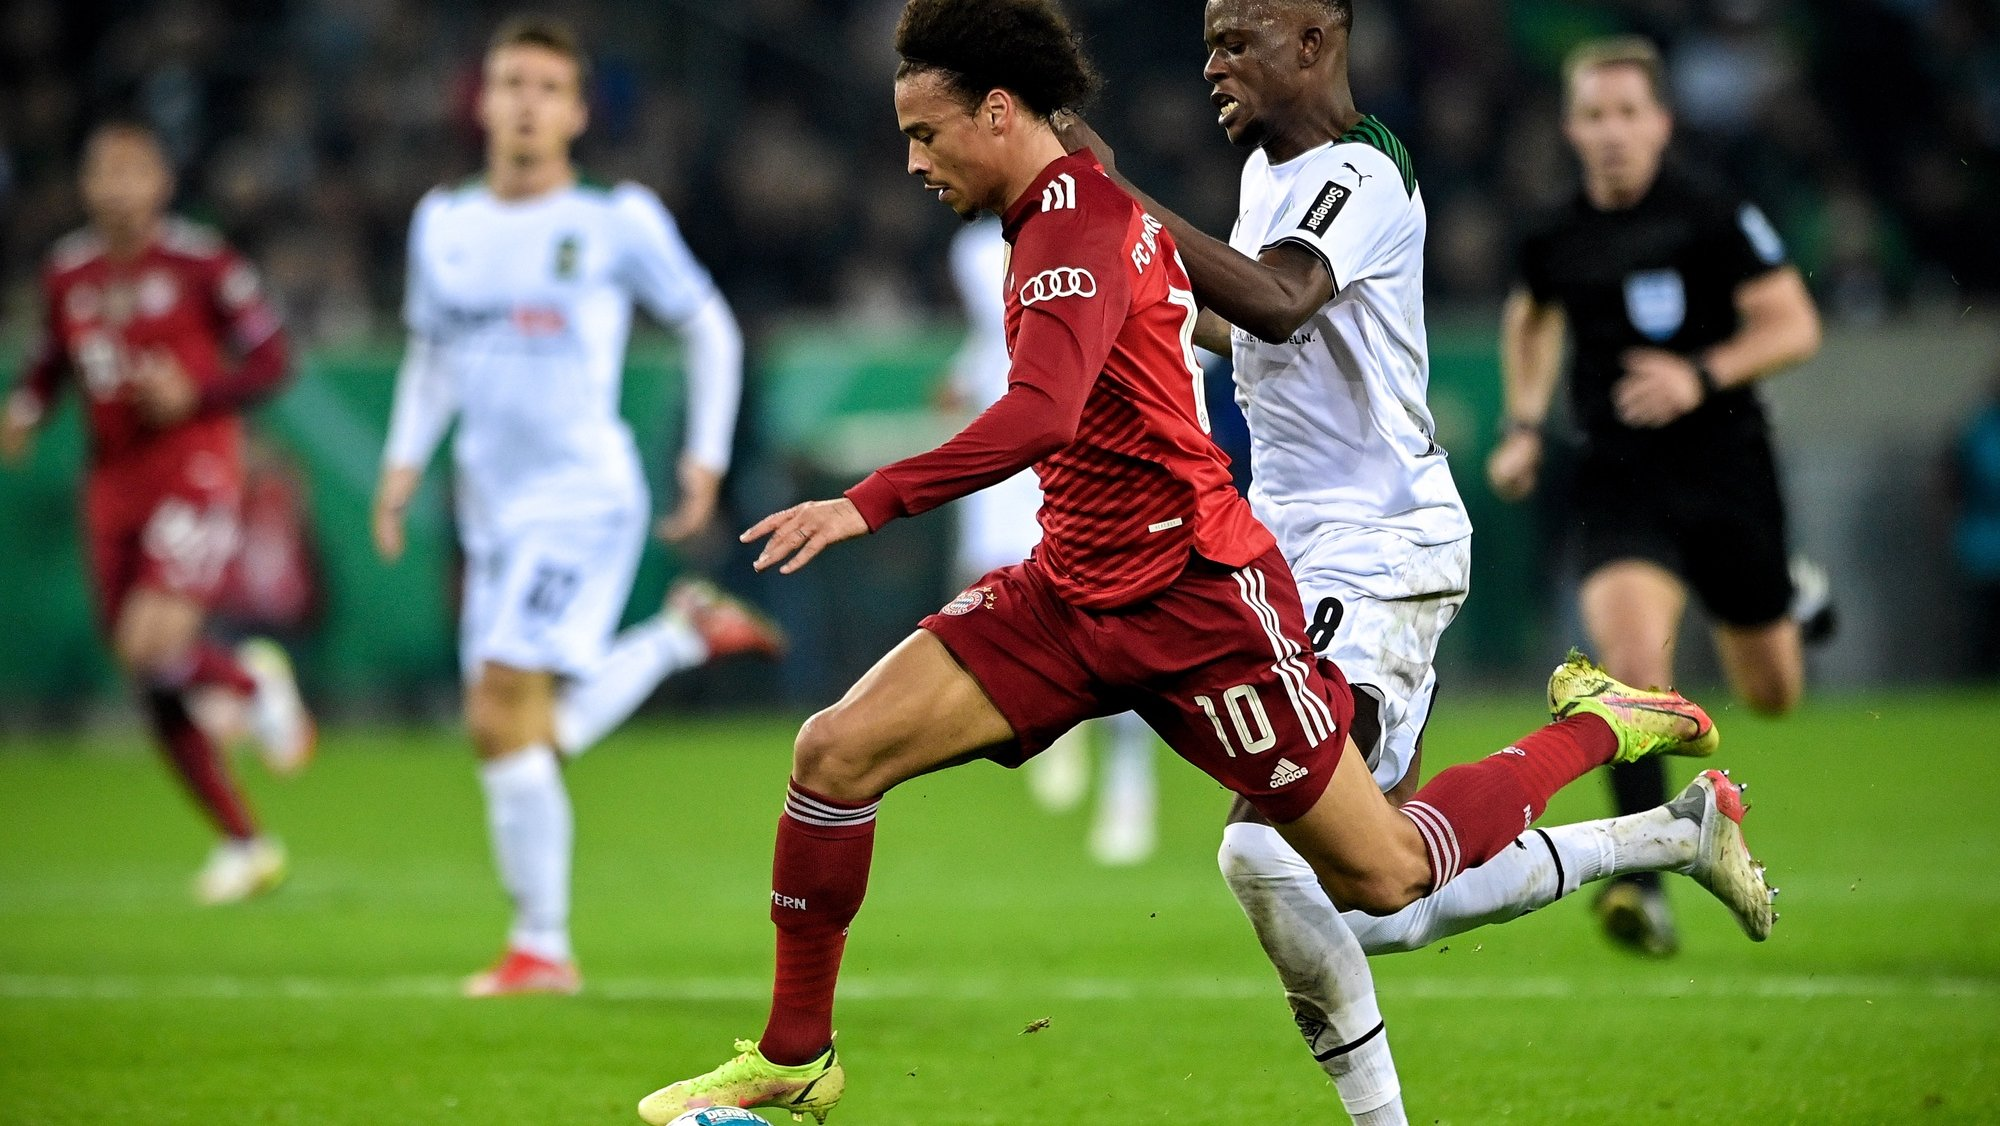 epa09549820 Bayern's Leroy Sane (L) in action against Moenchengladbach's Denis Zakaria (R) during the German DFB Cup second round soccer match between Borussia Moenchengladbach and FC Bayern Muenchen at Borussia-Park in Moenchengladbach, Germany, 27 October 2021.  EPA/SASCHA STEINBACH CONDITIONS - ATTENTION: The DFB regulations prohibit any use of photographs as image sequences and/or quasi-video.